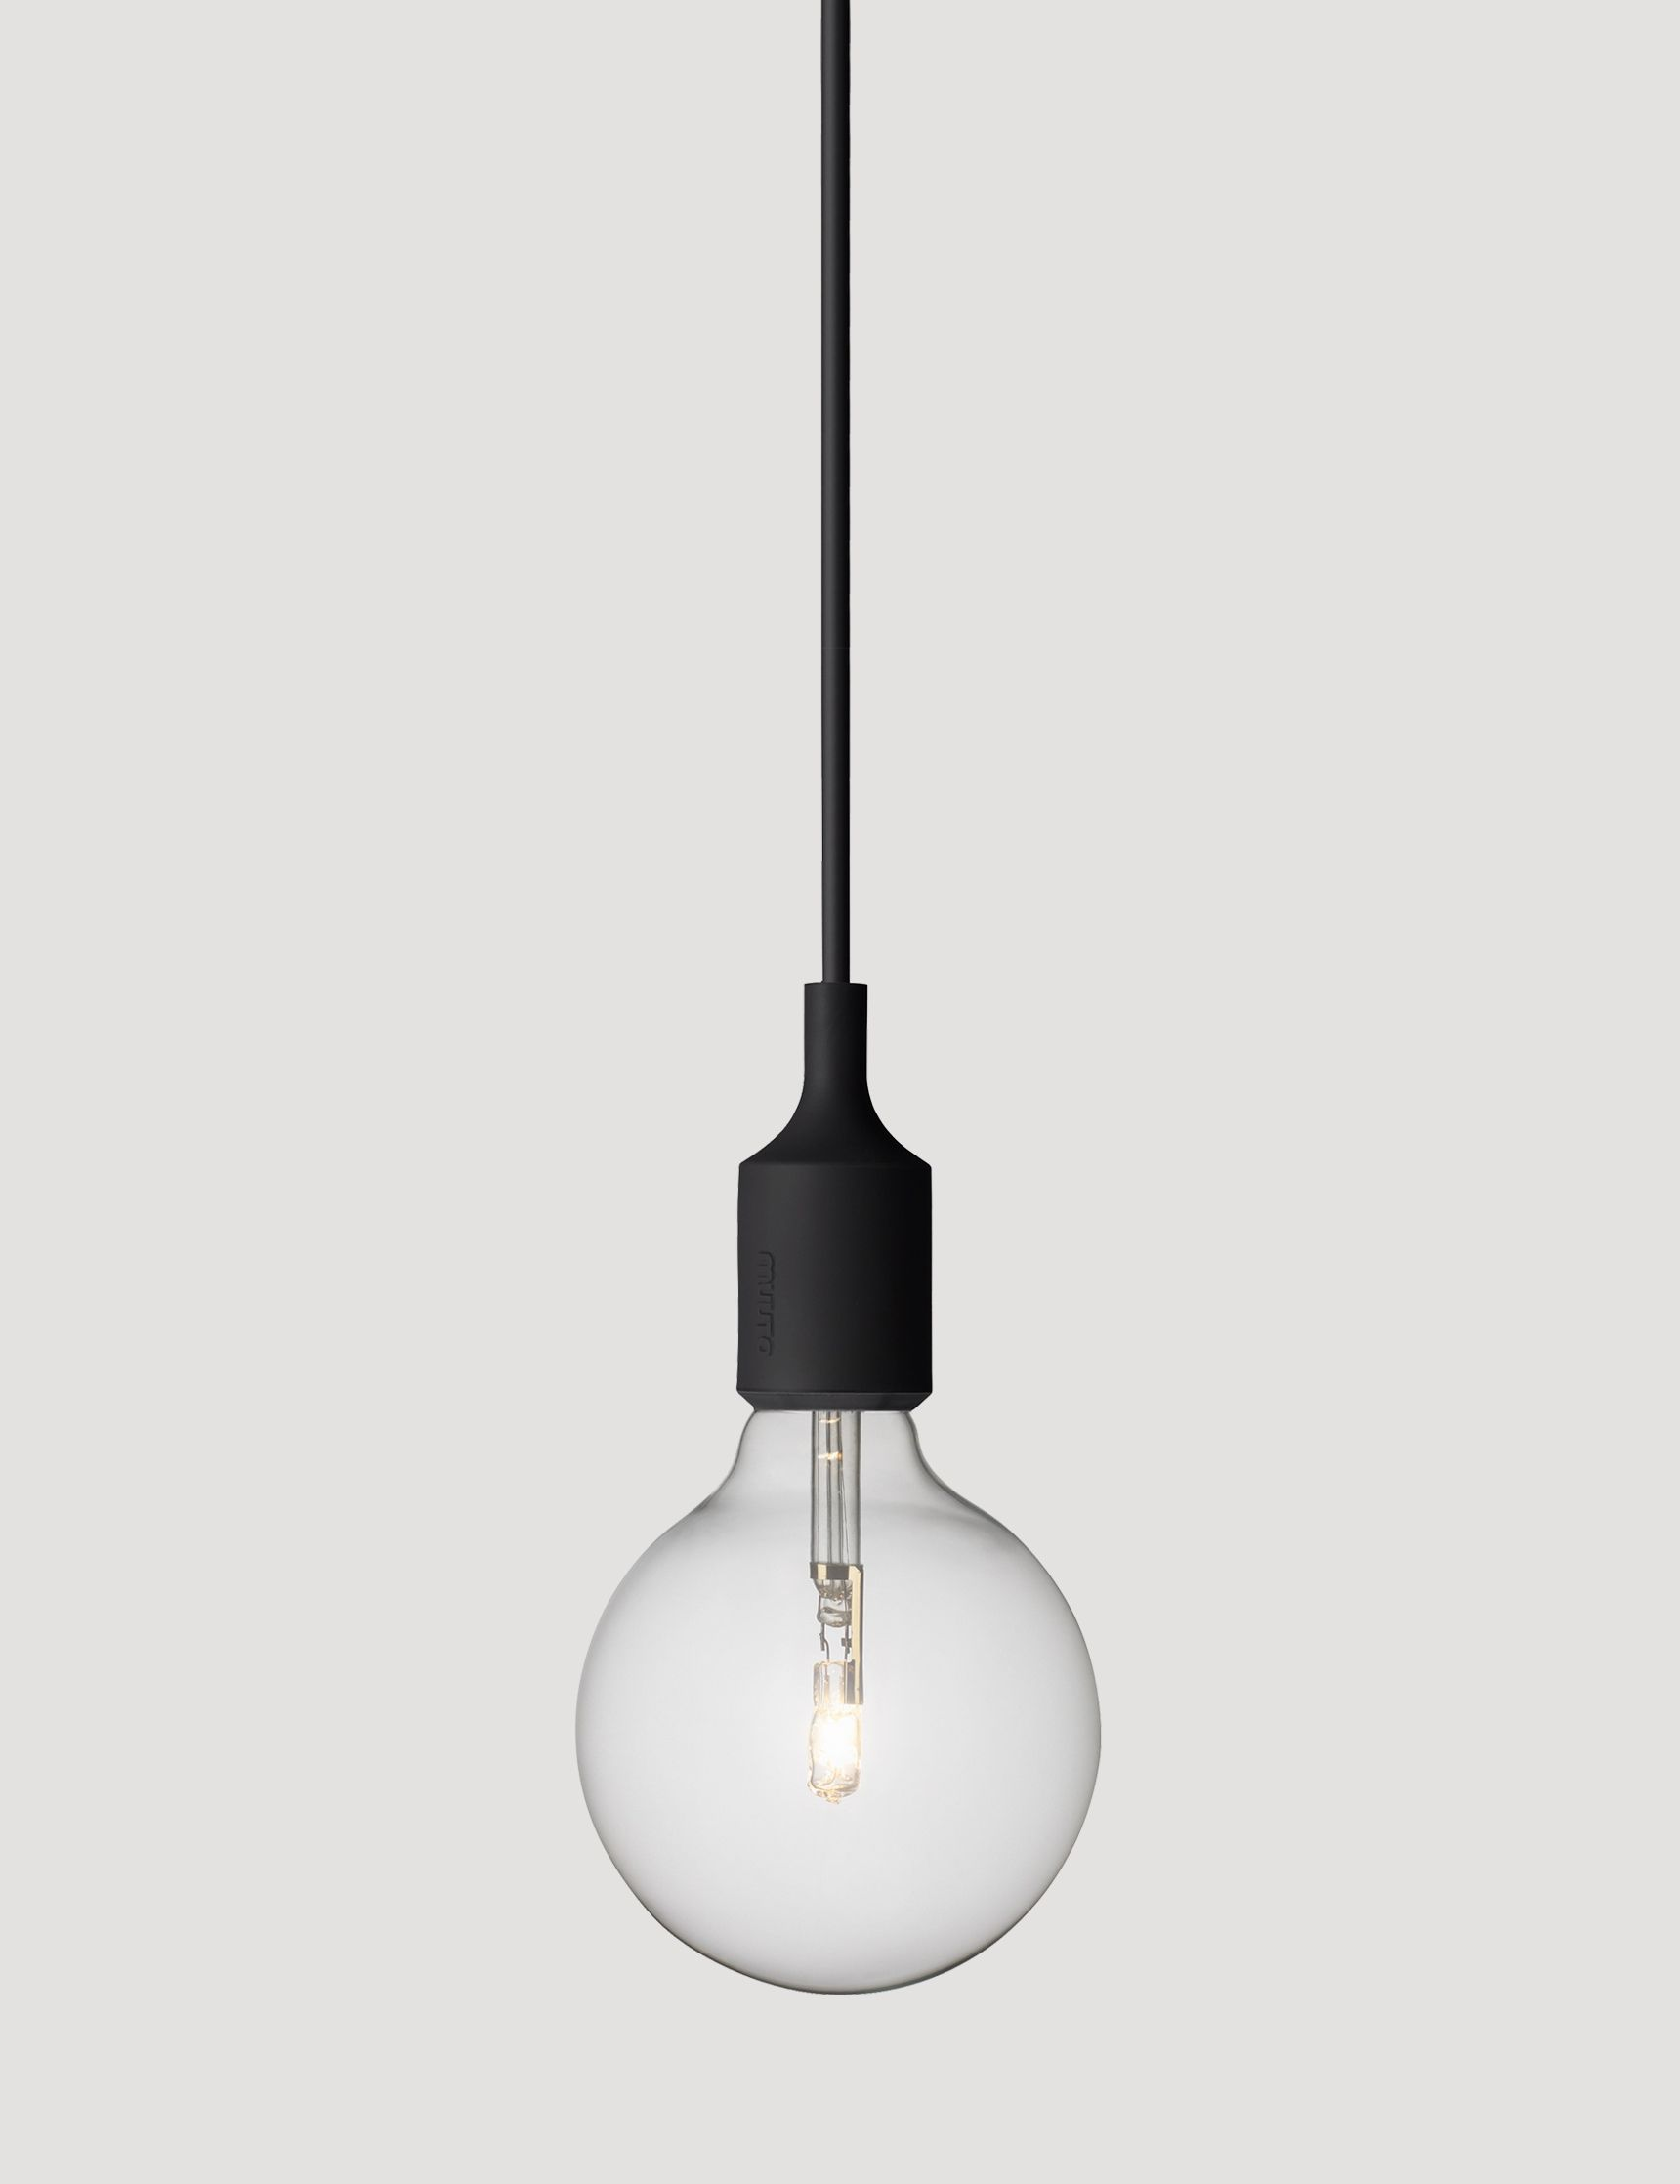 A striking bulb that plays with the subtle aesthetics and